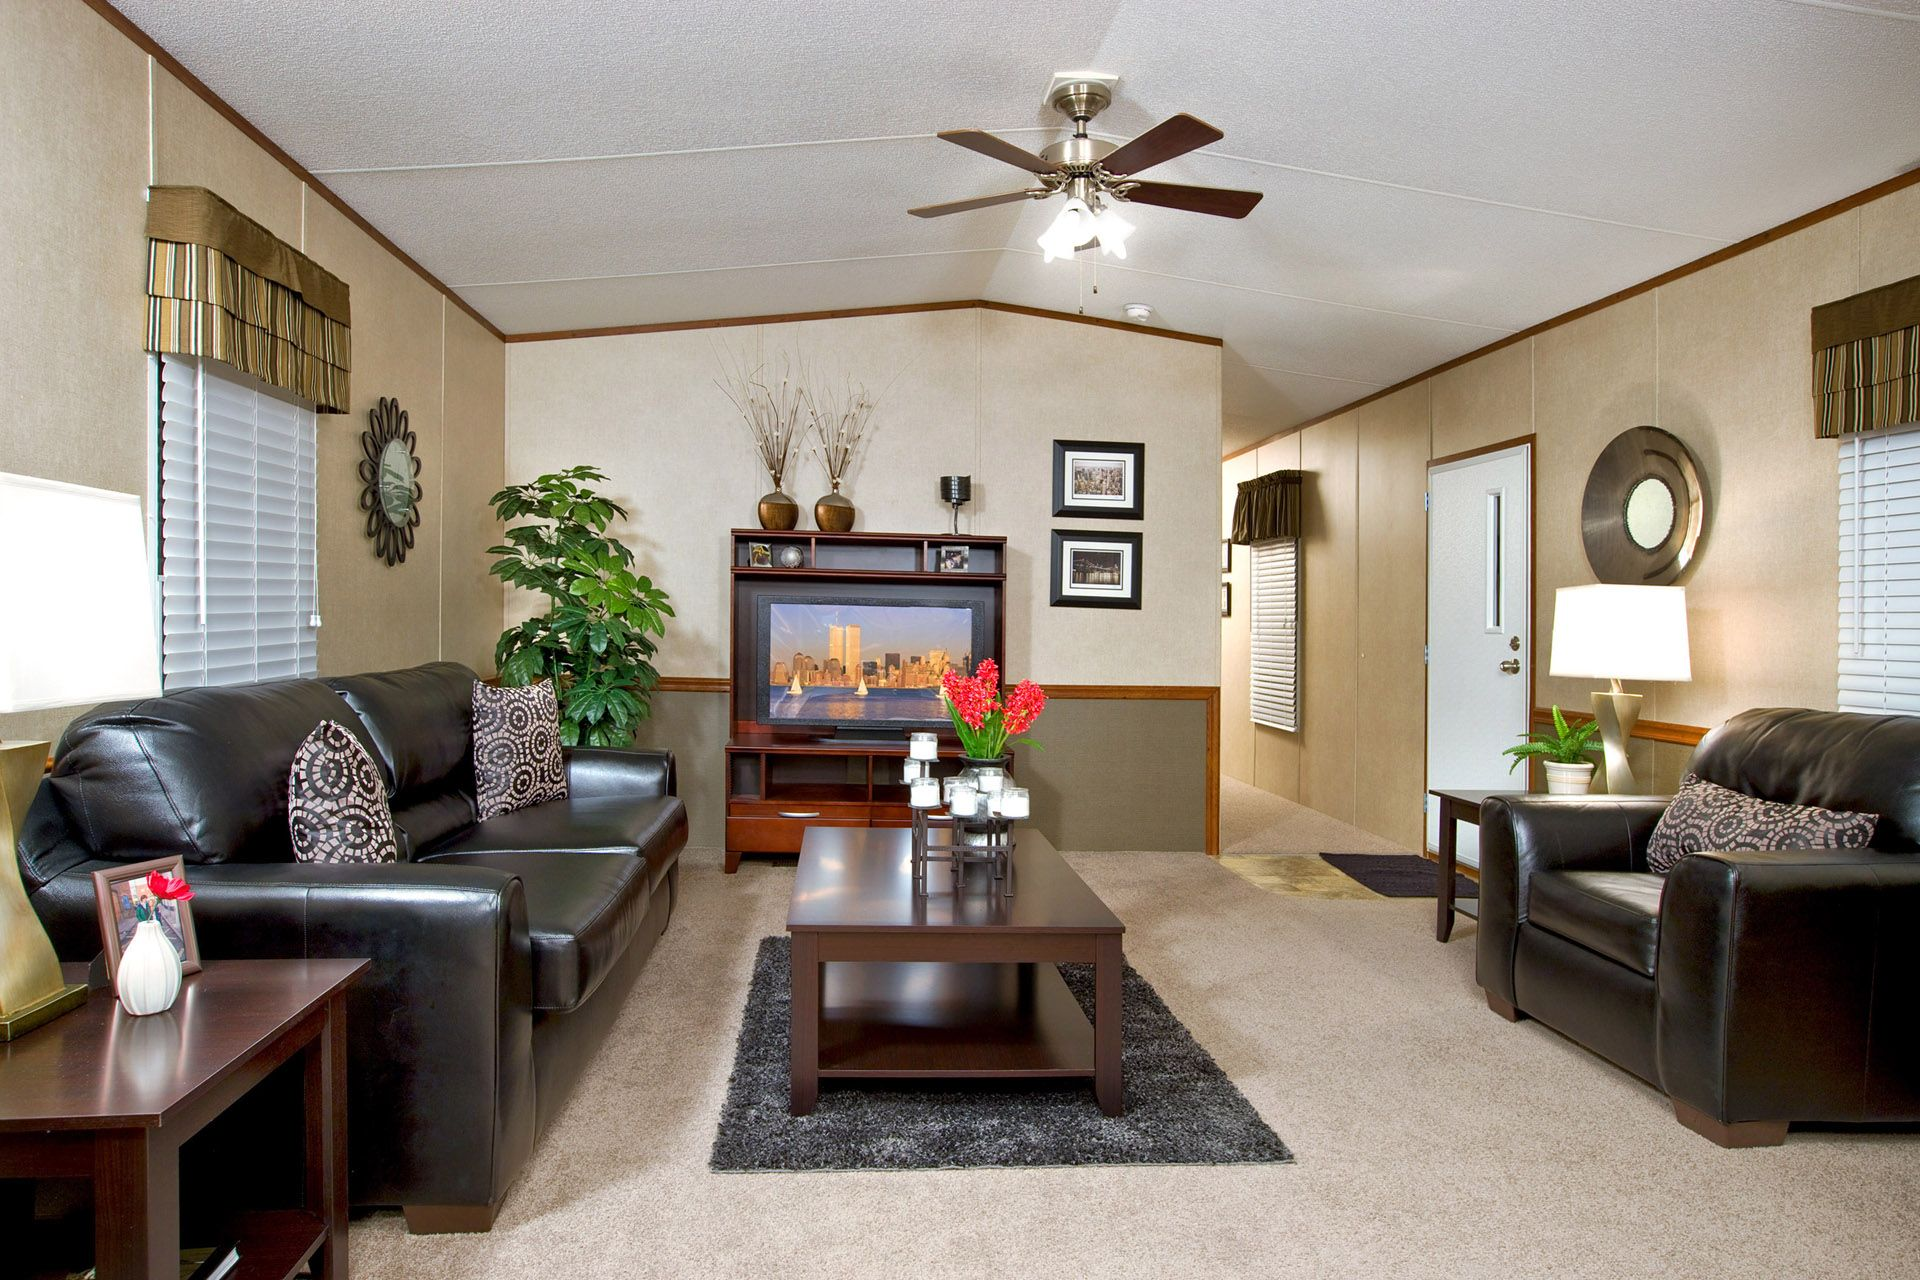 The Yes   YES16804UH   Mobile home renovations, Mobile home living, Living room remodel